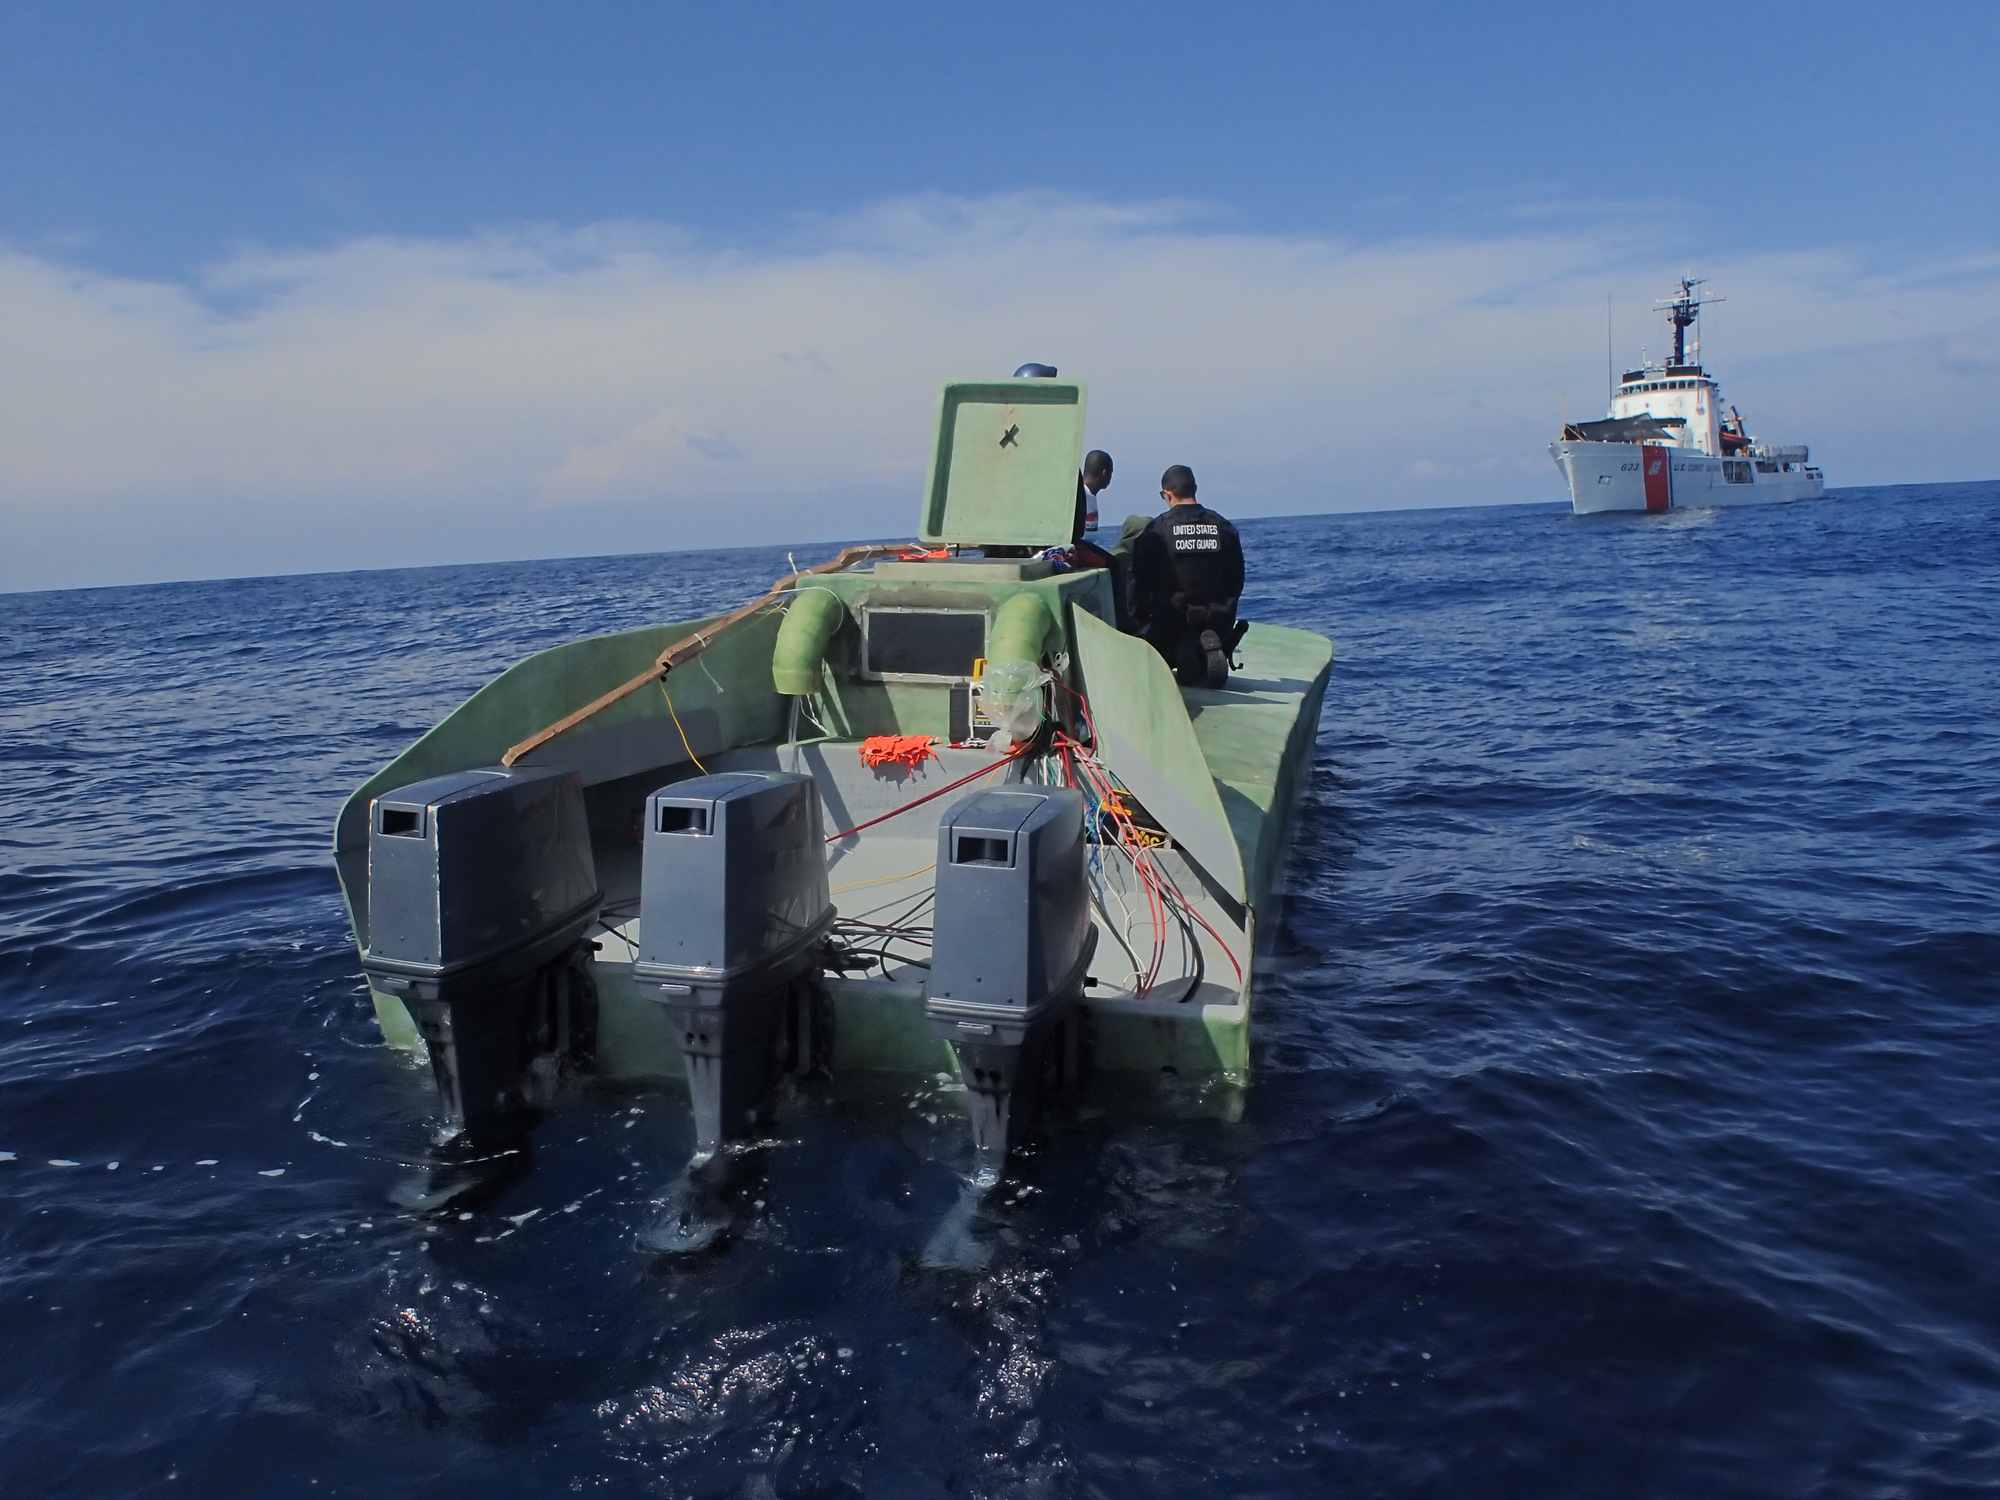 Coast Guard Cutter Steadfast intercepts suspected drug smuggling low profile vessel